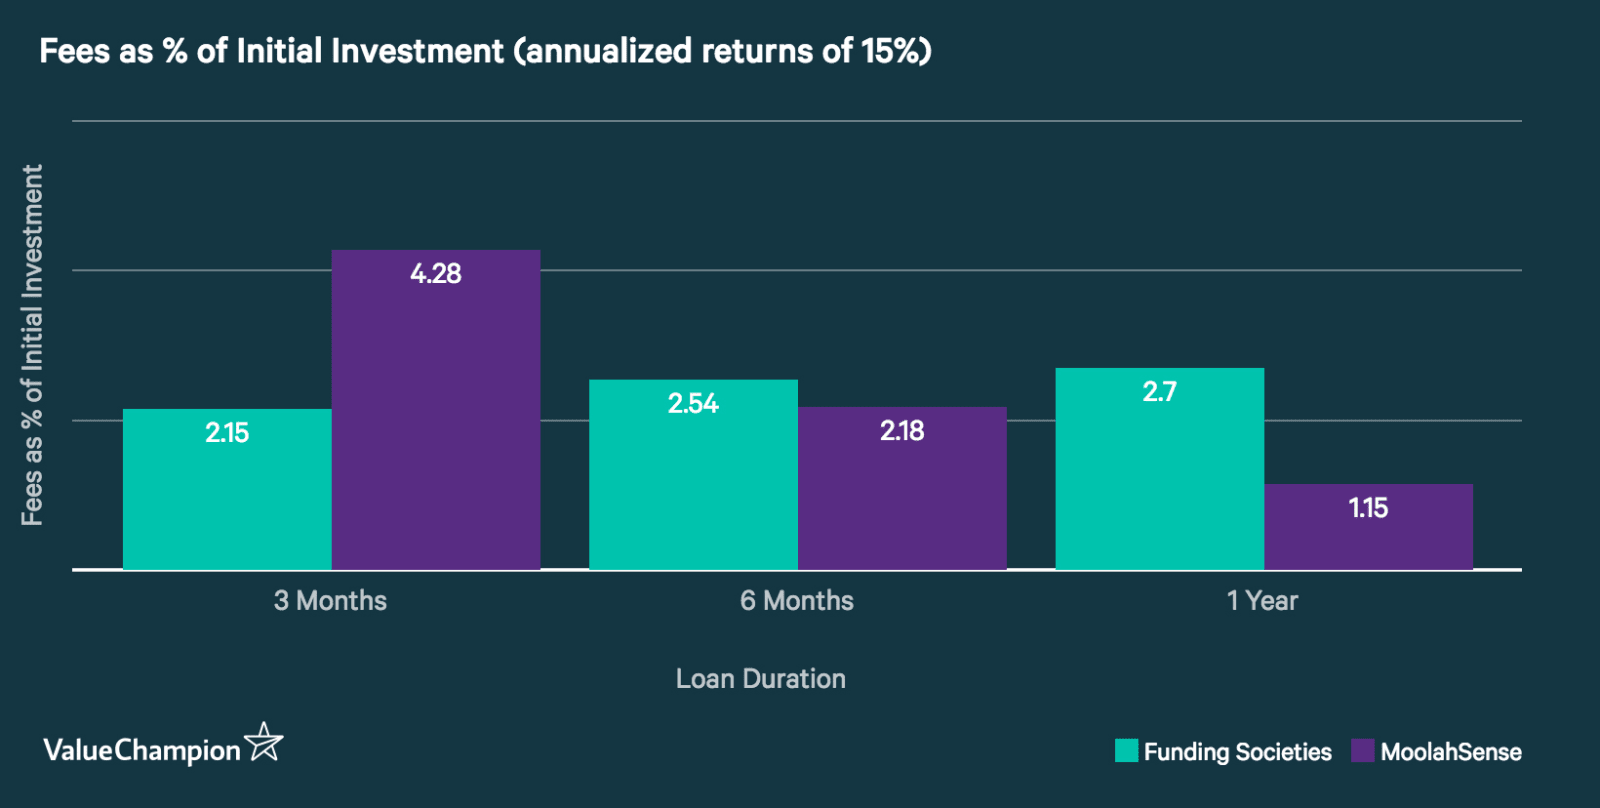 Column chart comparing the Investor Service Fee (as a percentage of investment)  given a 15% annualized rate of return. MoolahSense's fee is cheaper than Funding Societies' fee fwith durations of 6 months year or longer